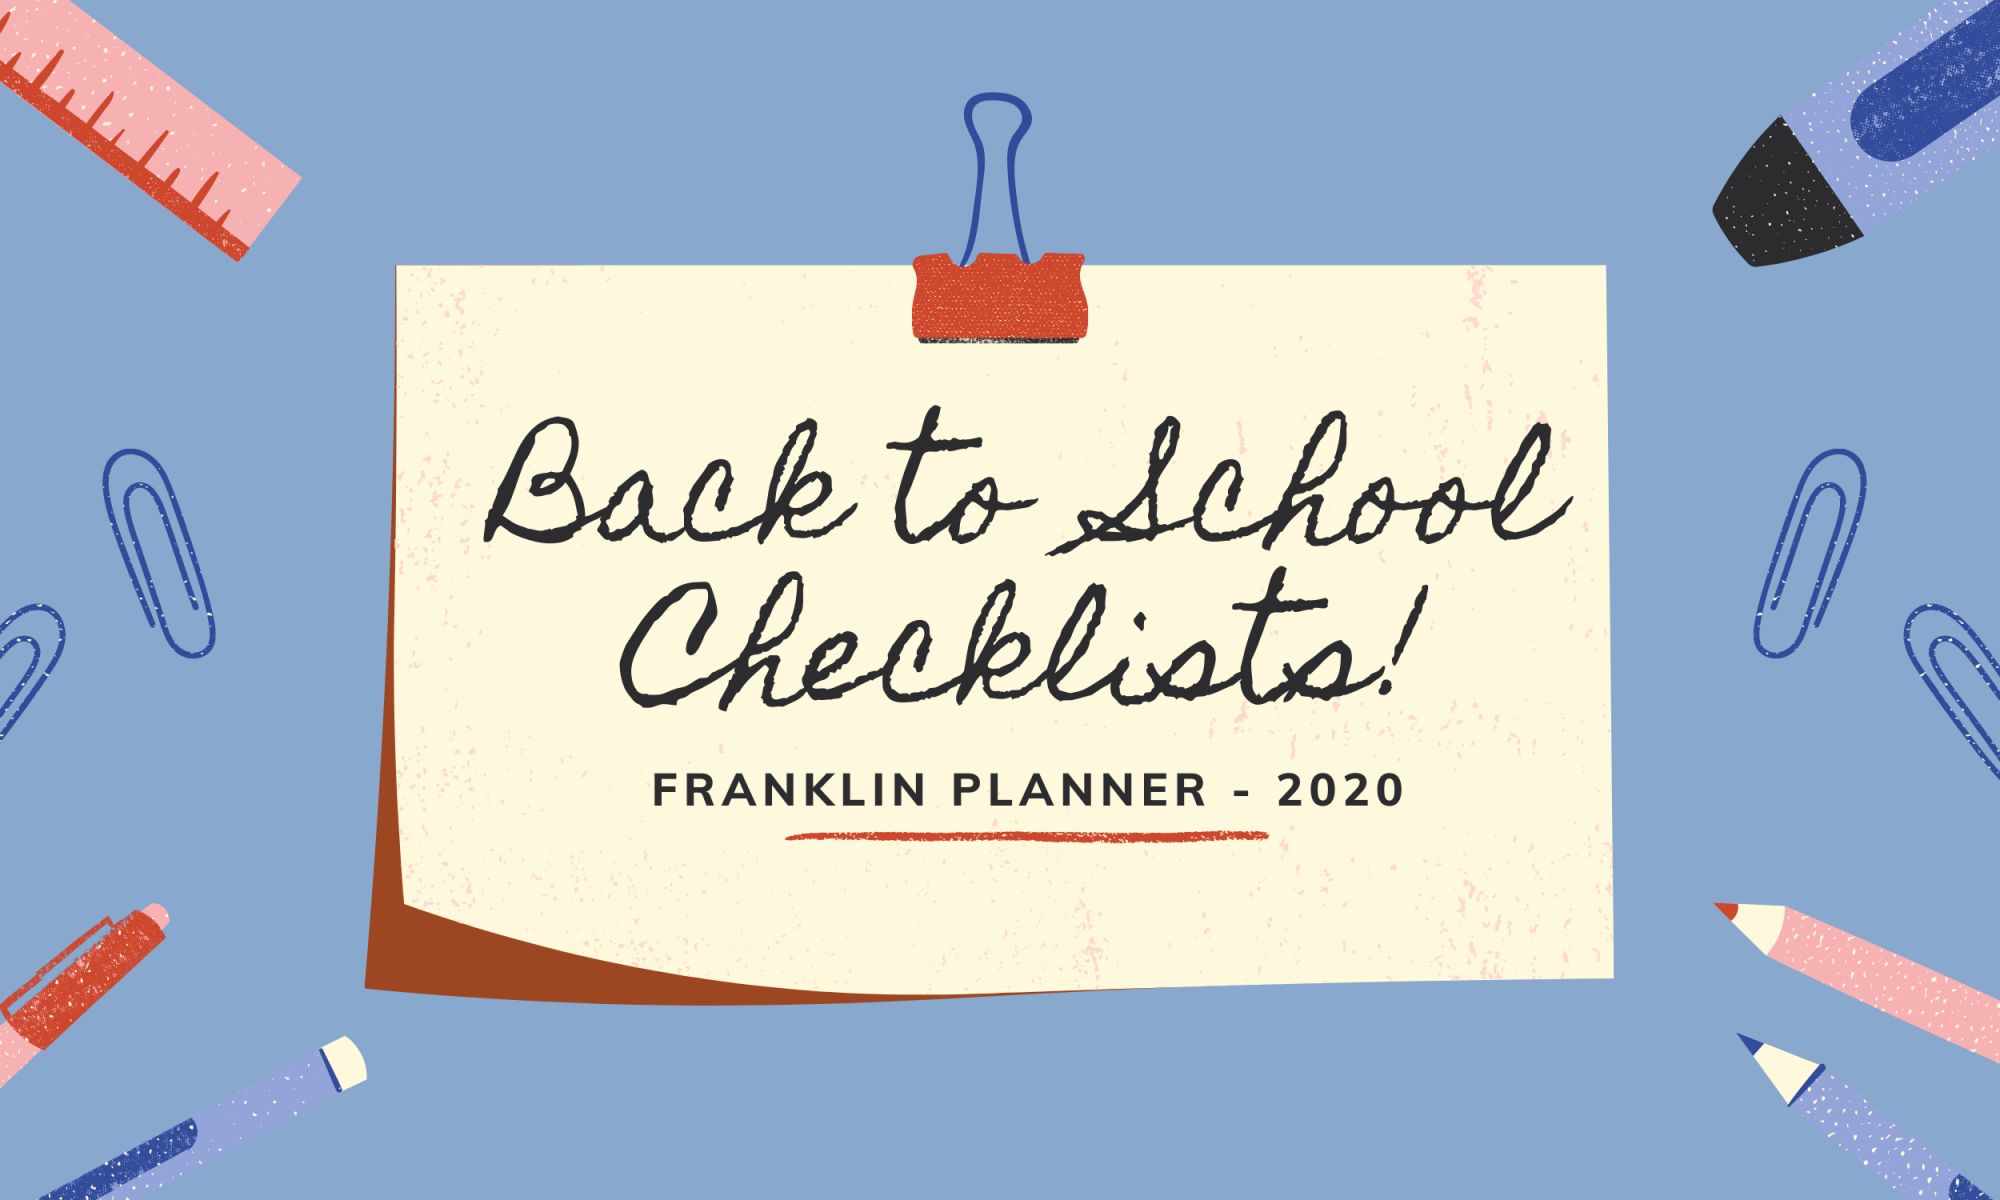 Back to school checklists